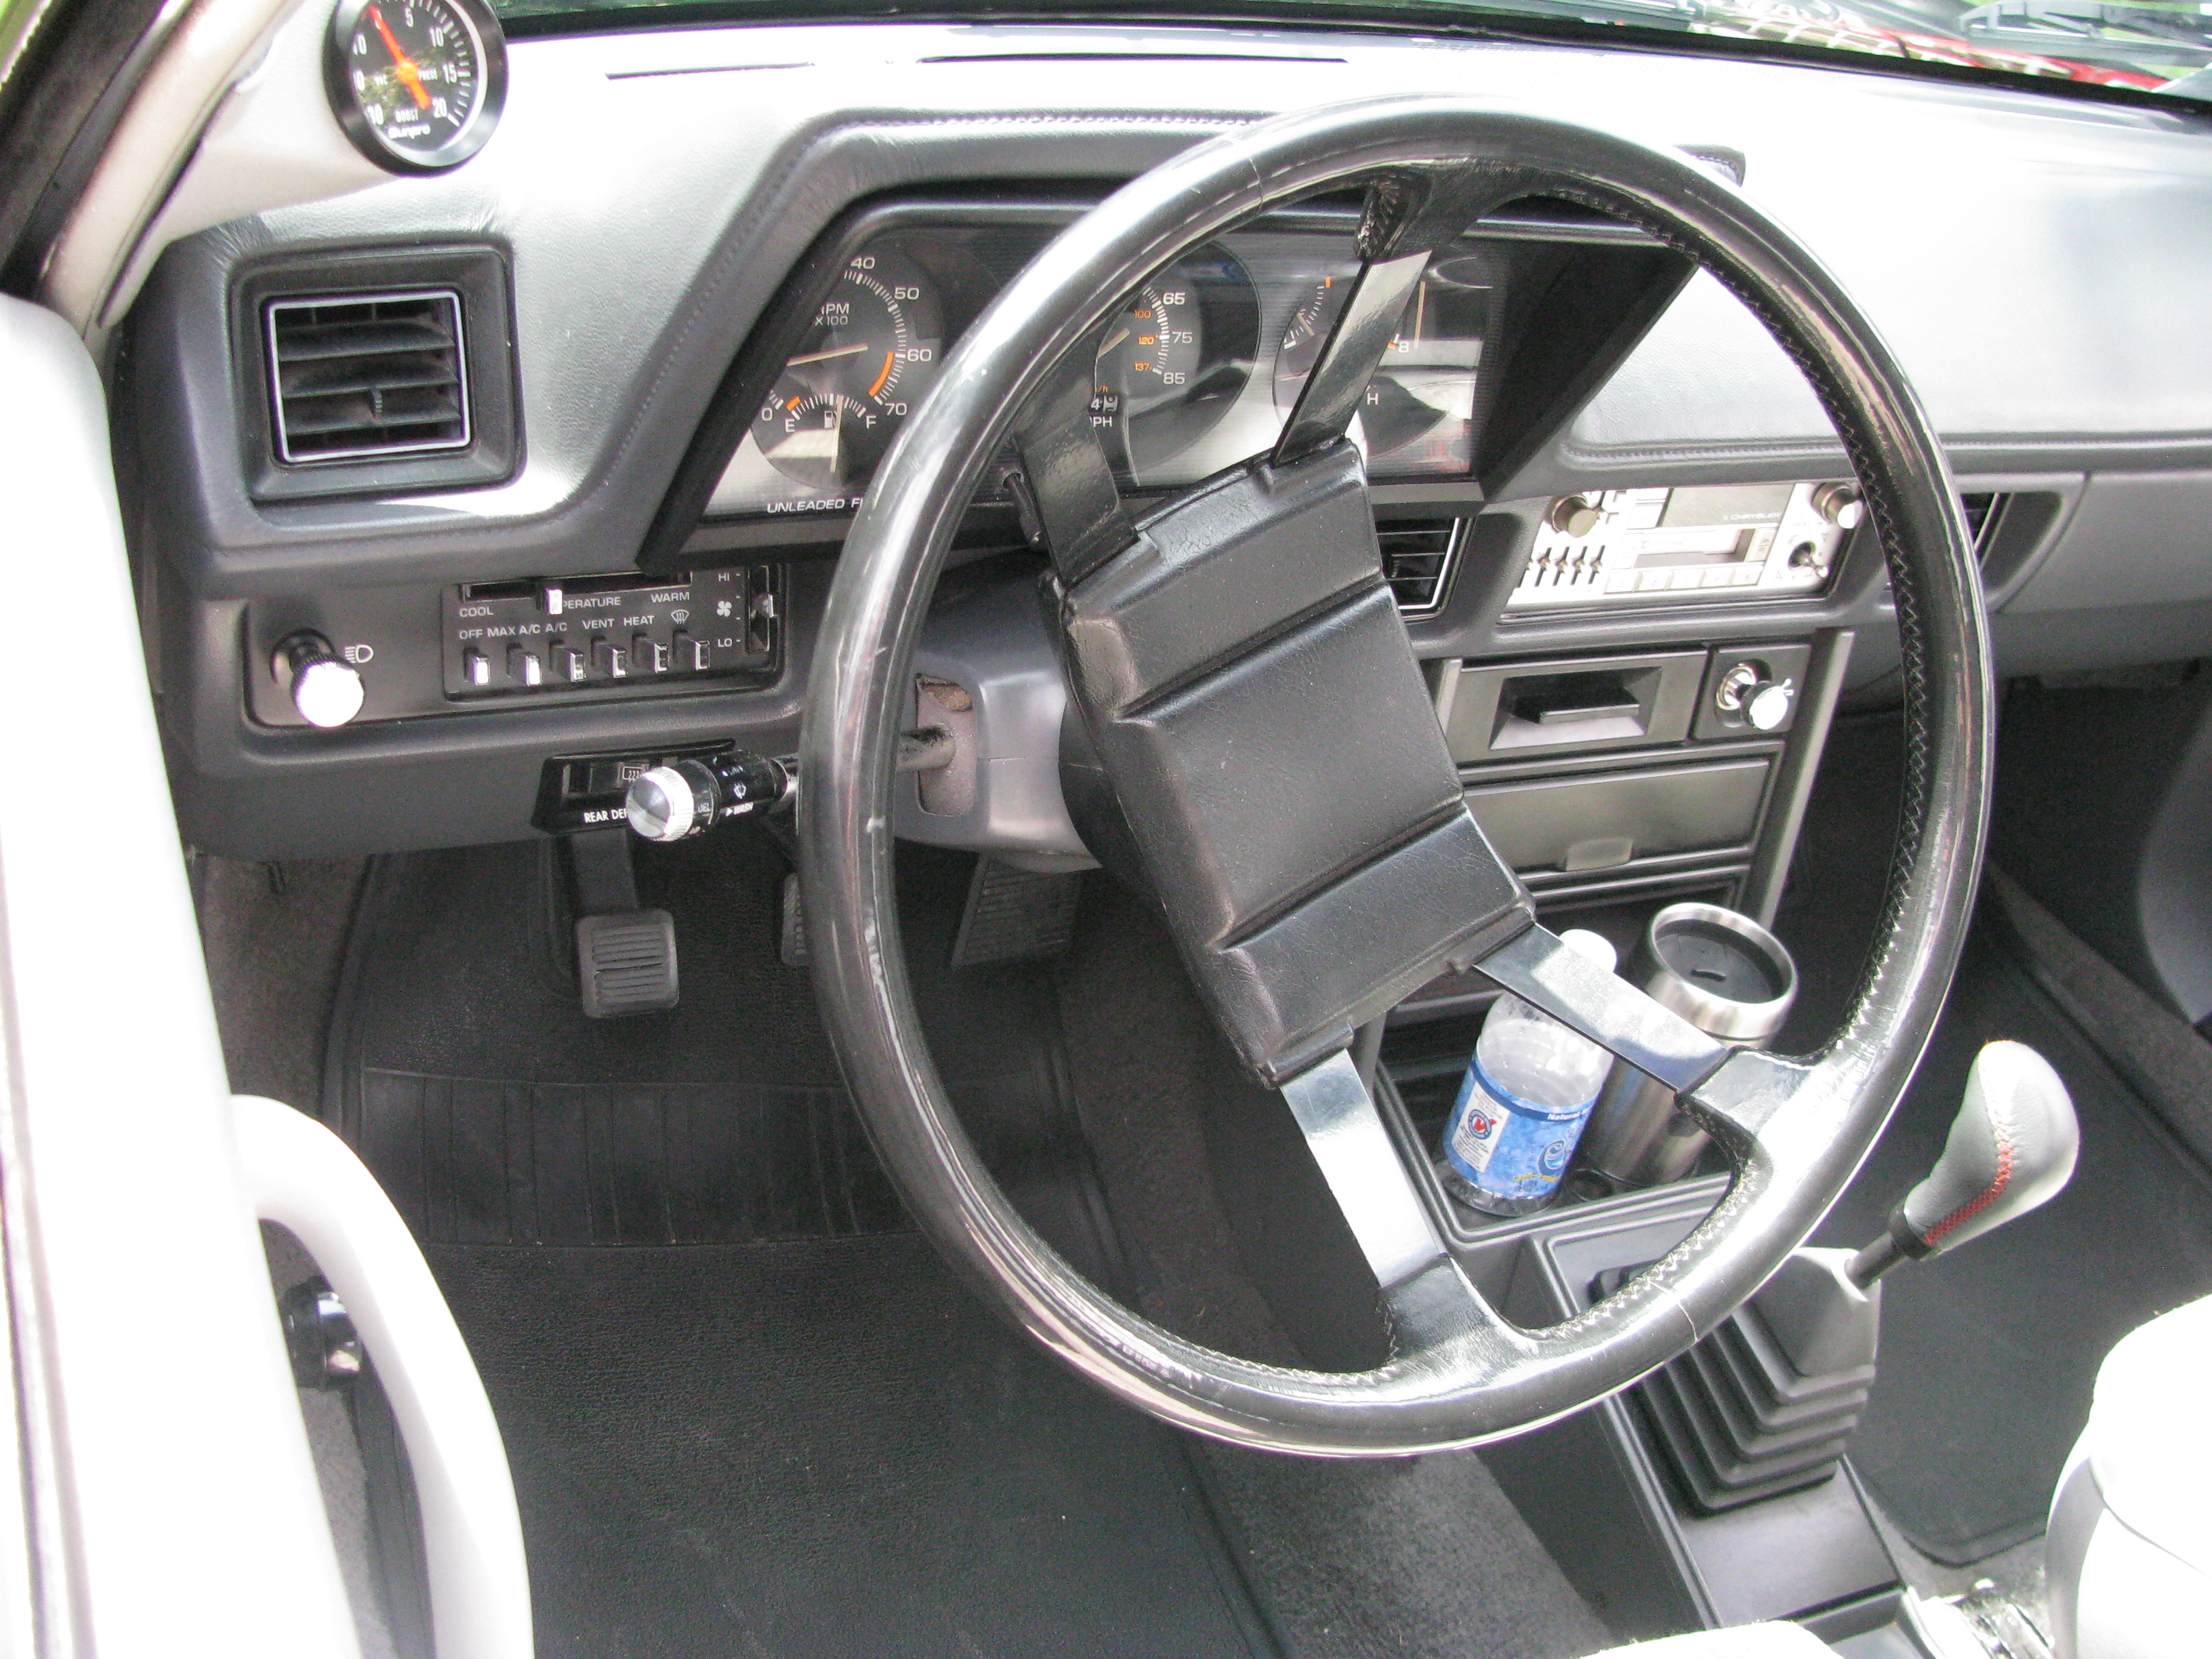 1986 dodge omni glh turbo car interior design. Black Bedroom Furniture Sets. Home Design Ideas